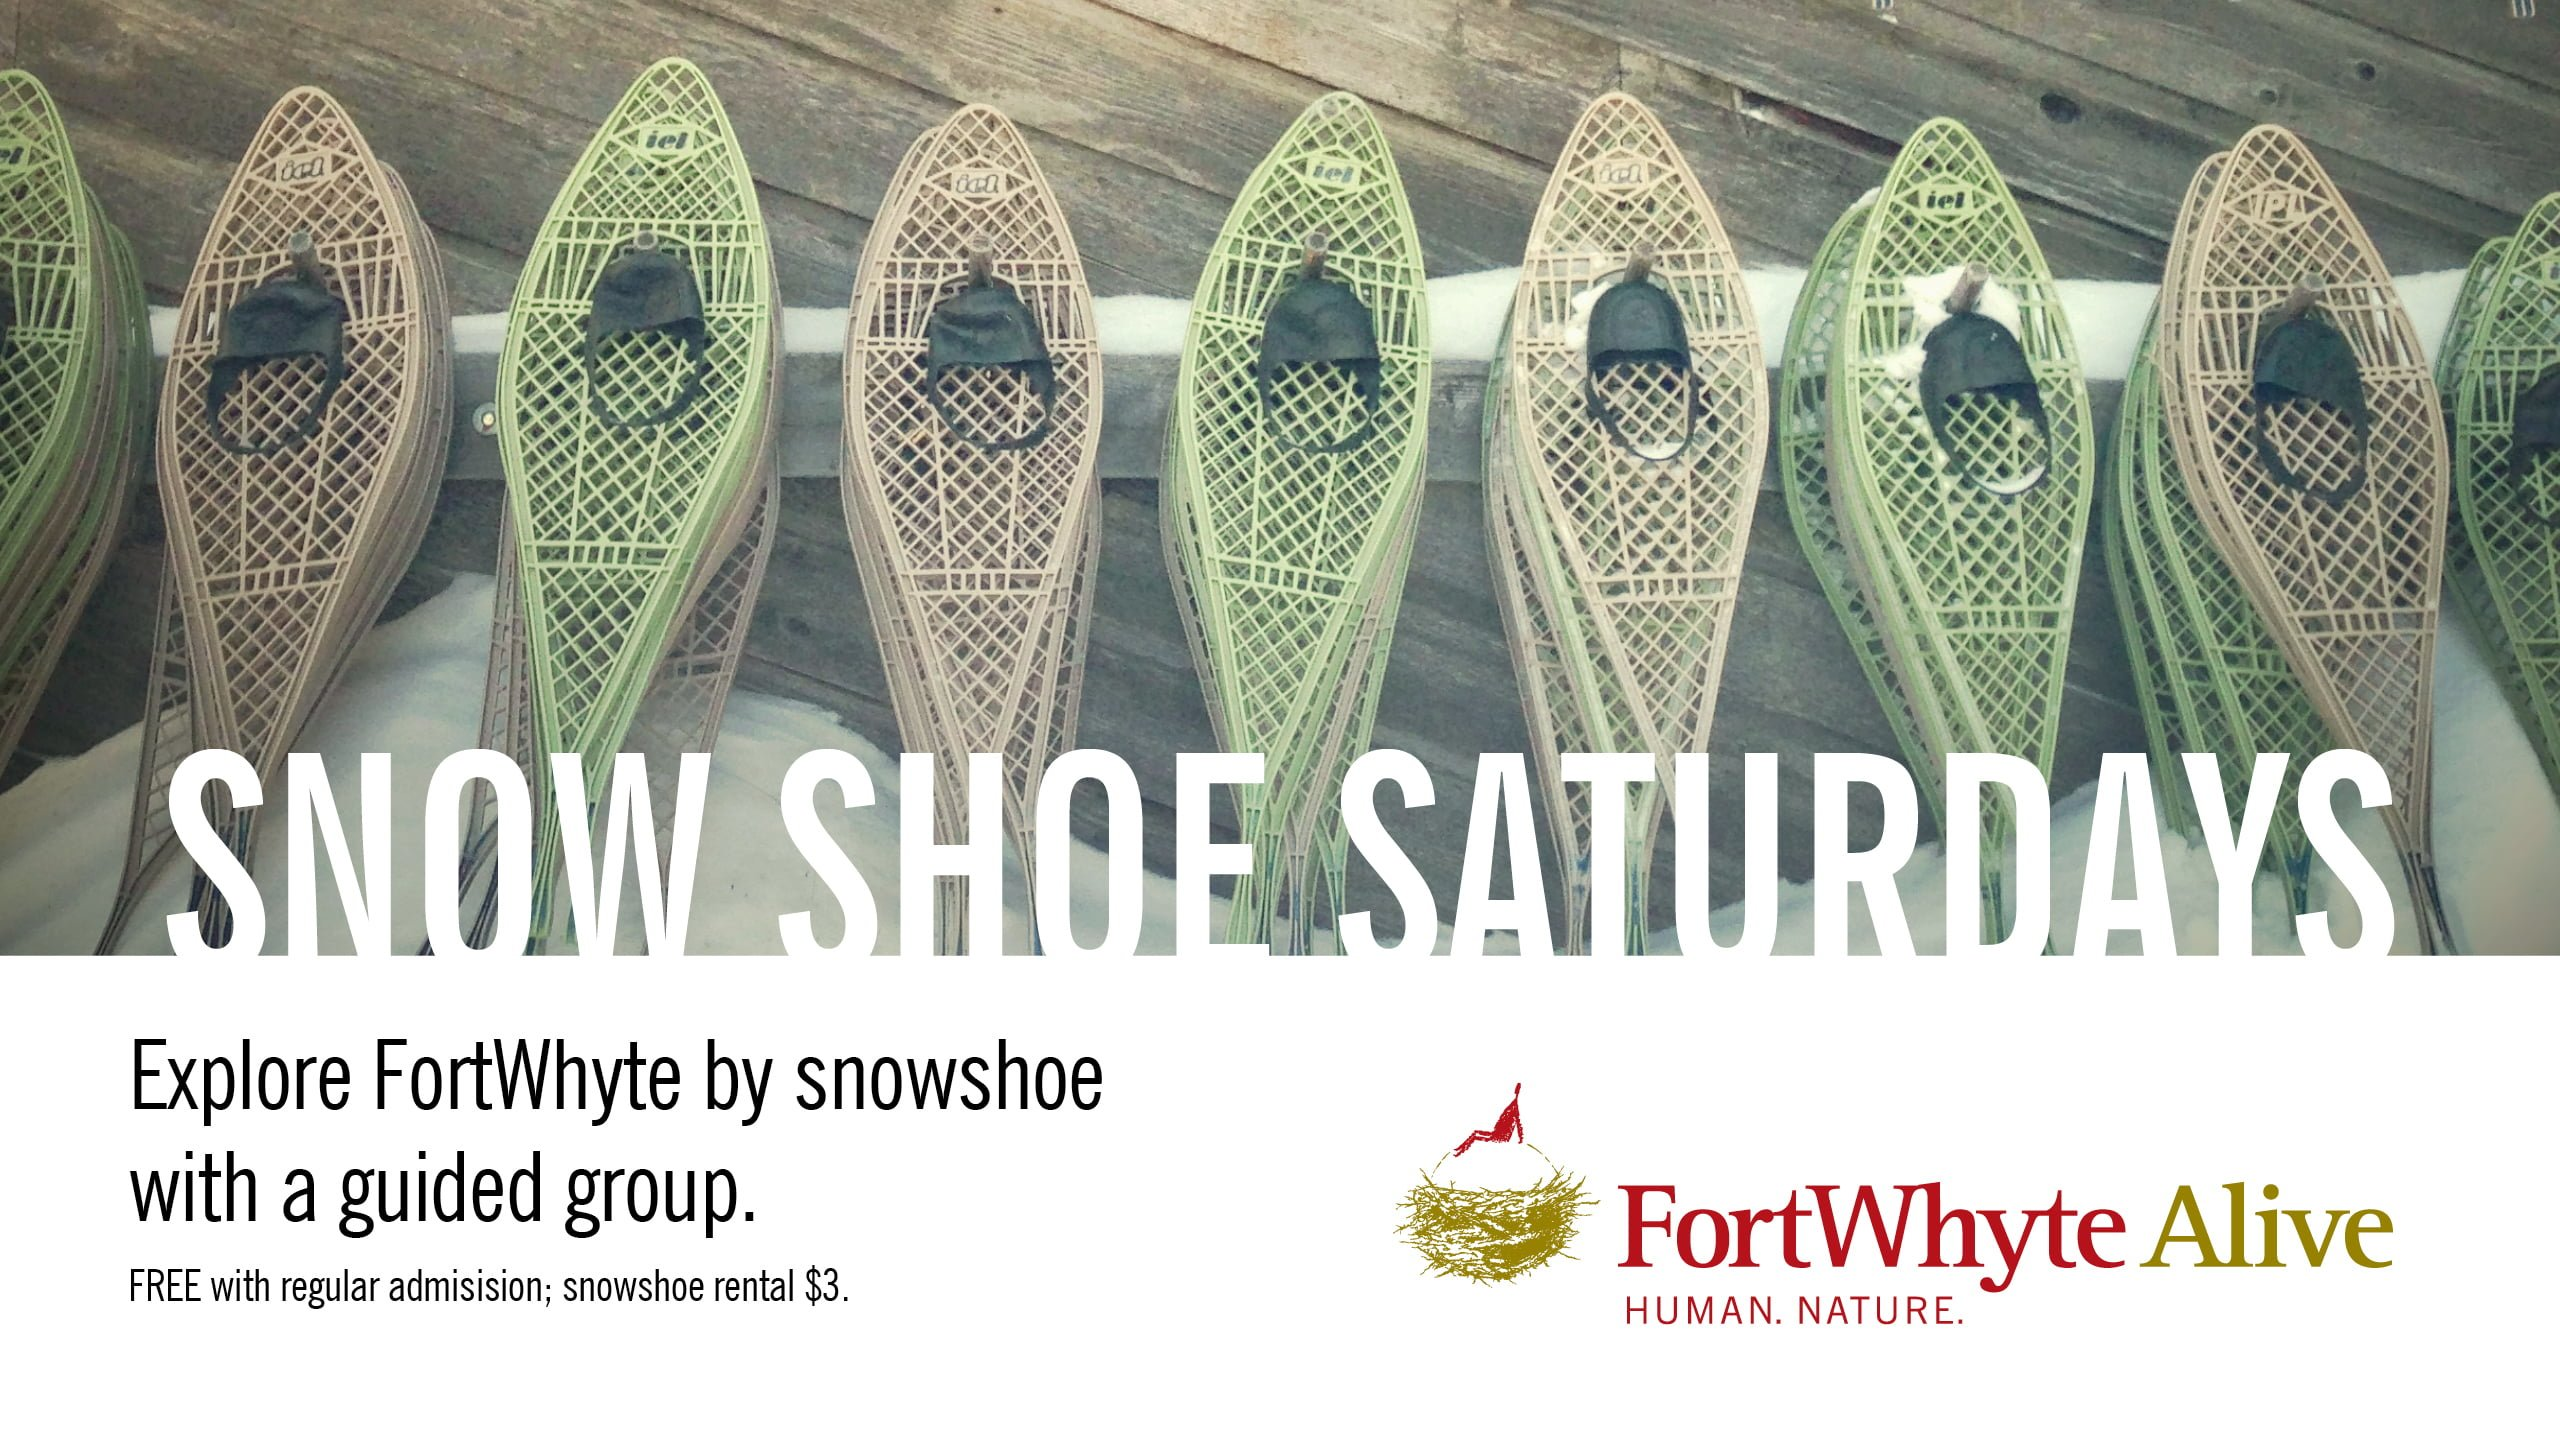 FWA-Alloway-Screens-December-Snowshoe